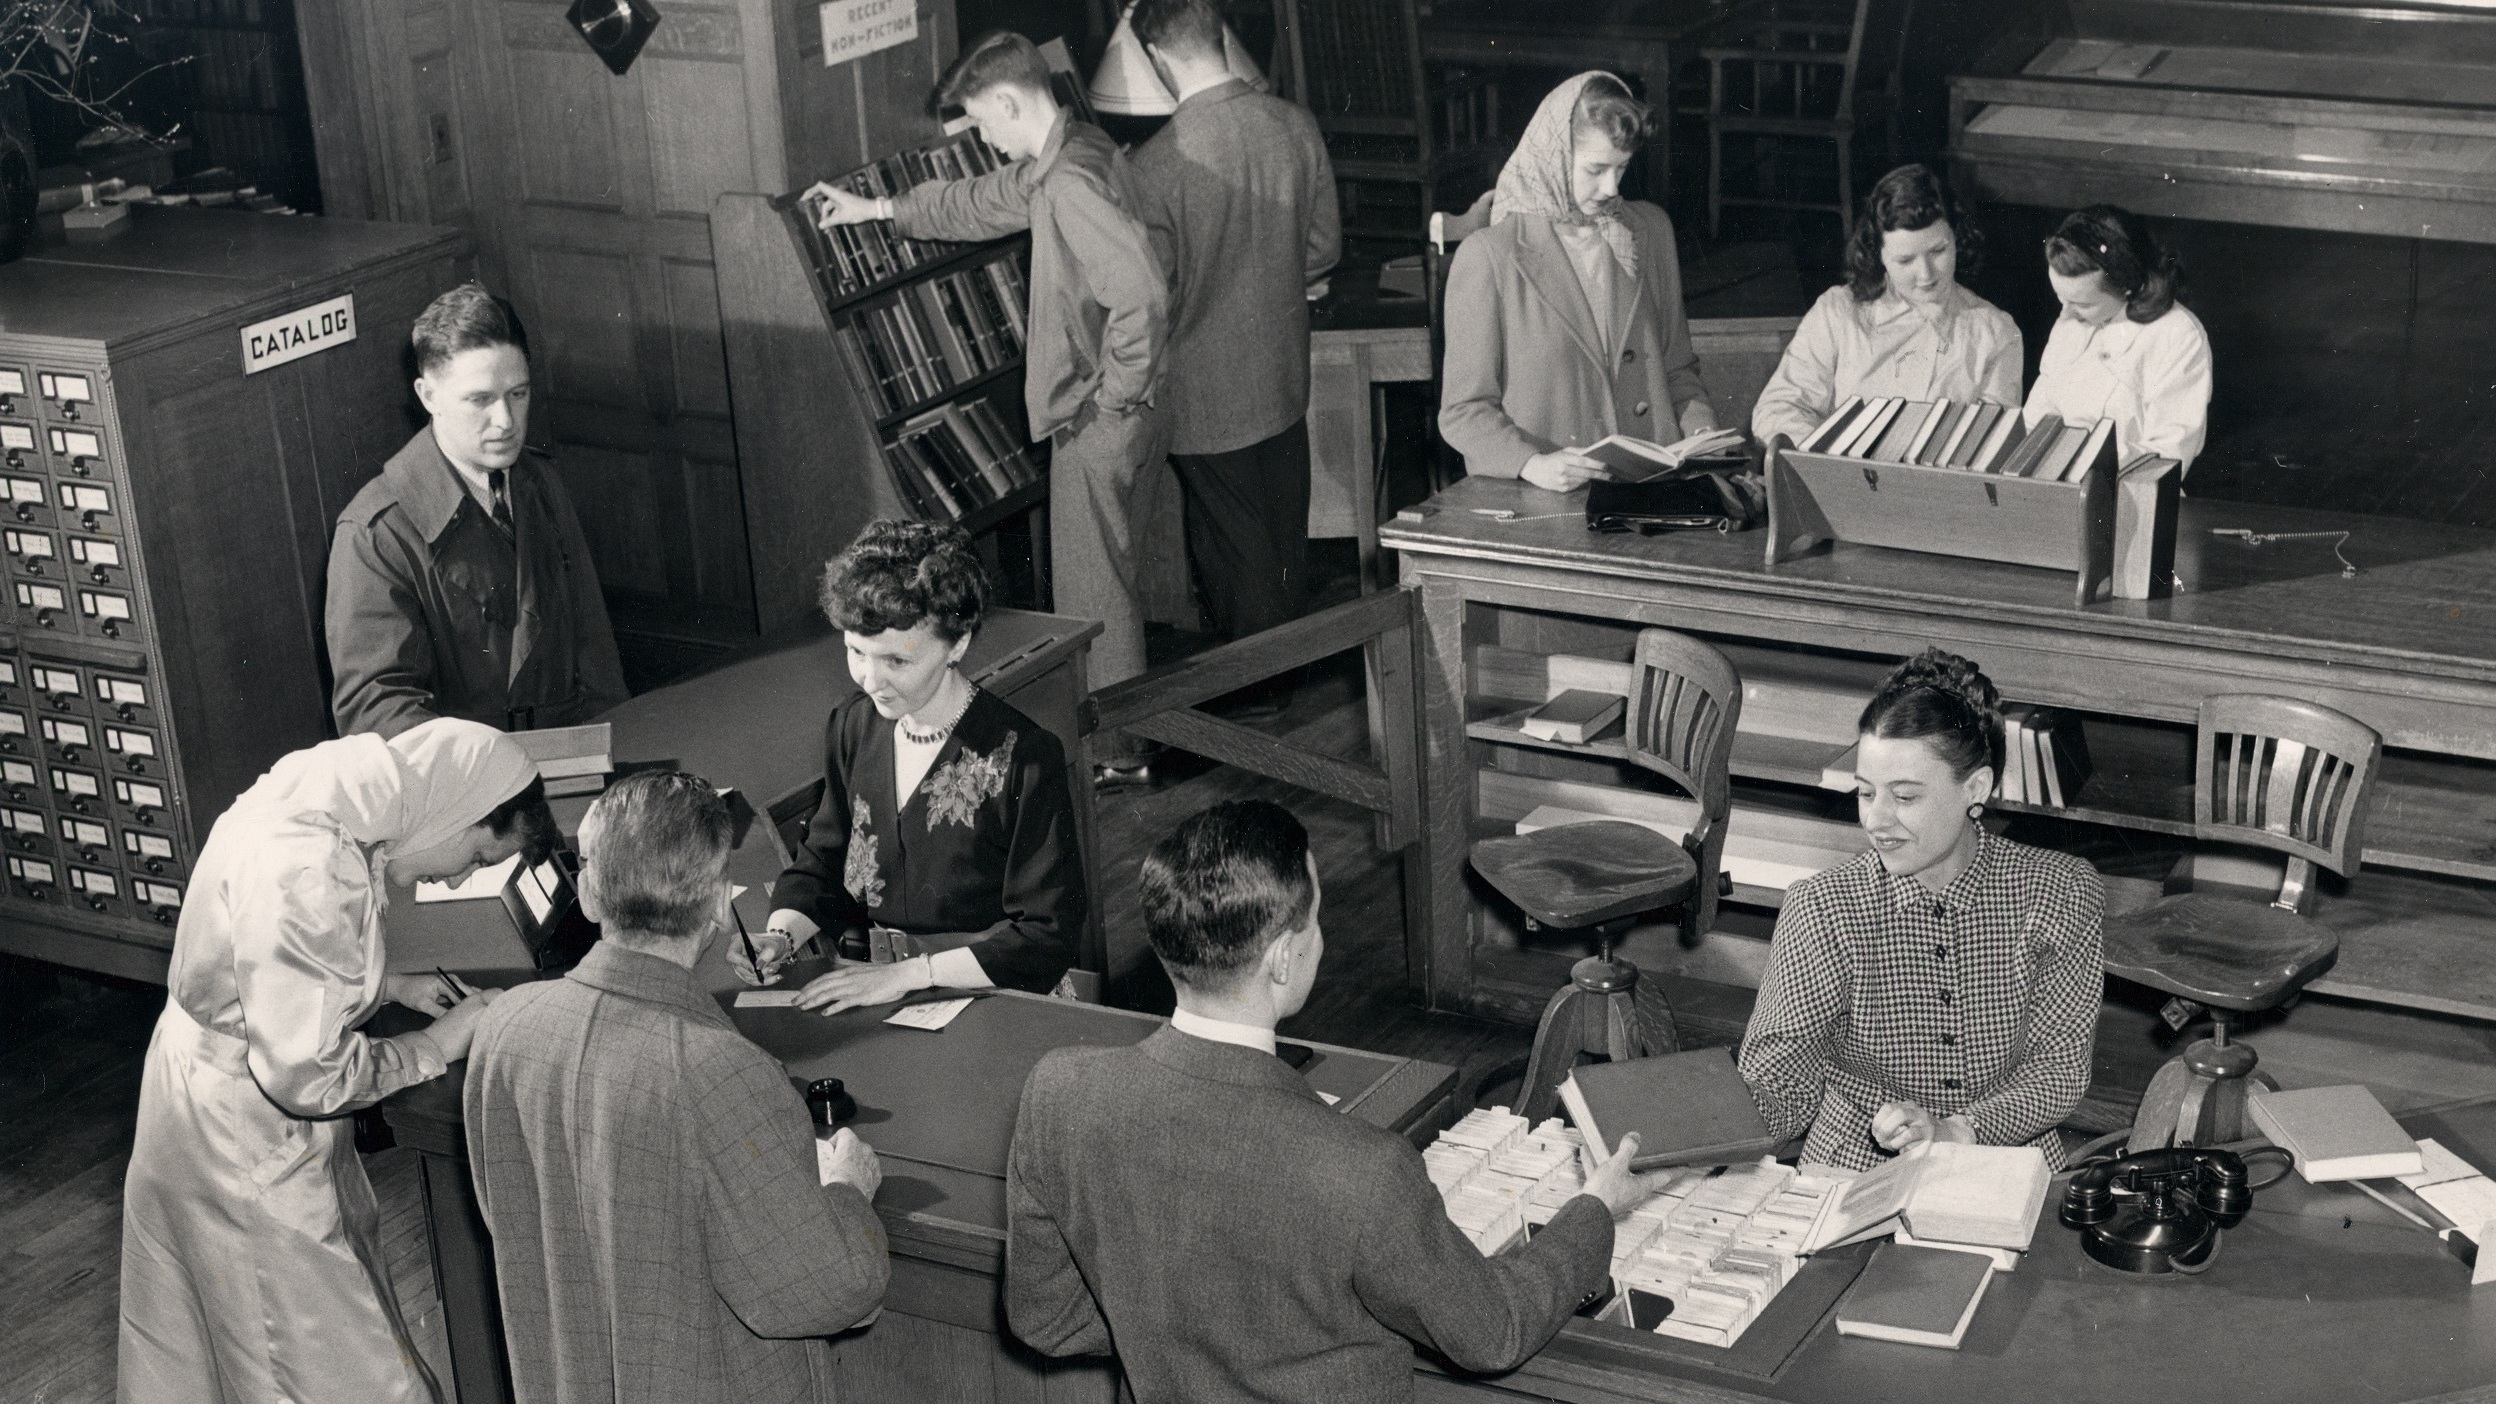 Circulation Desk at Berkshire Athenaeum Library circa 1940